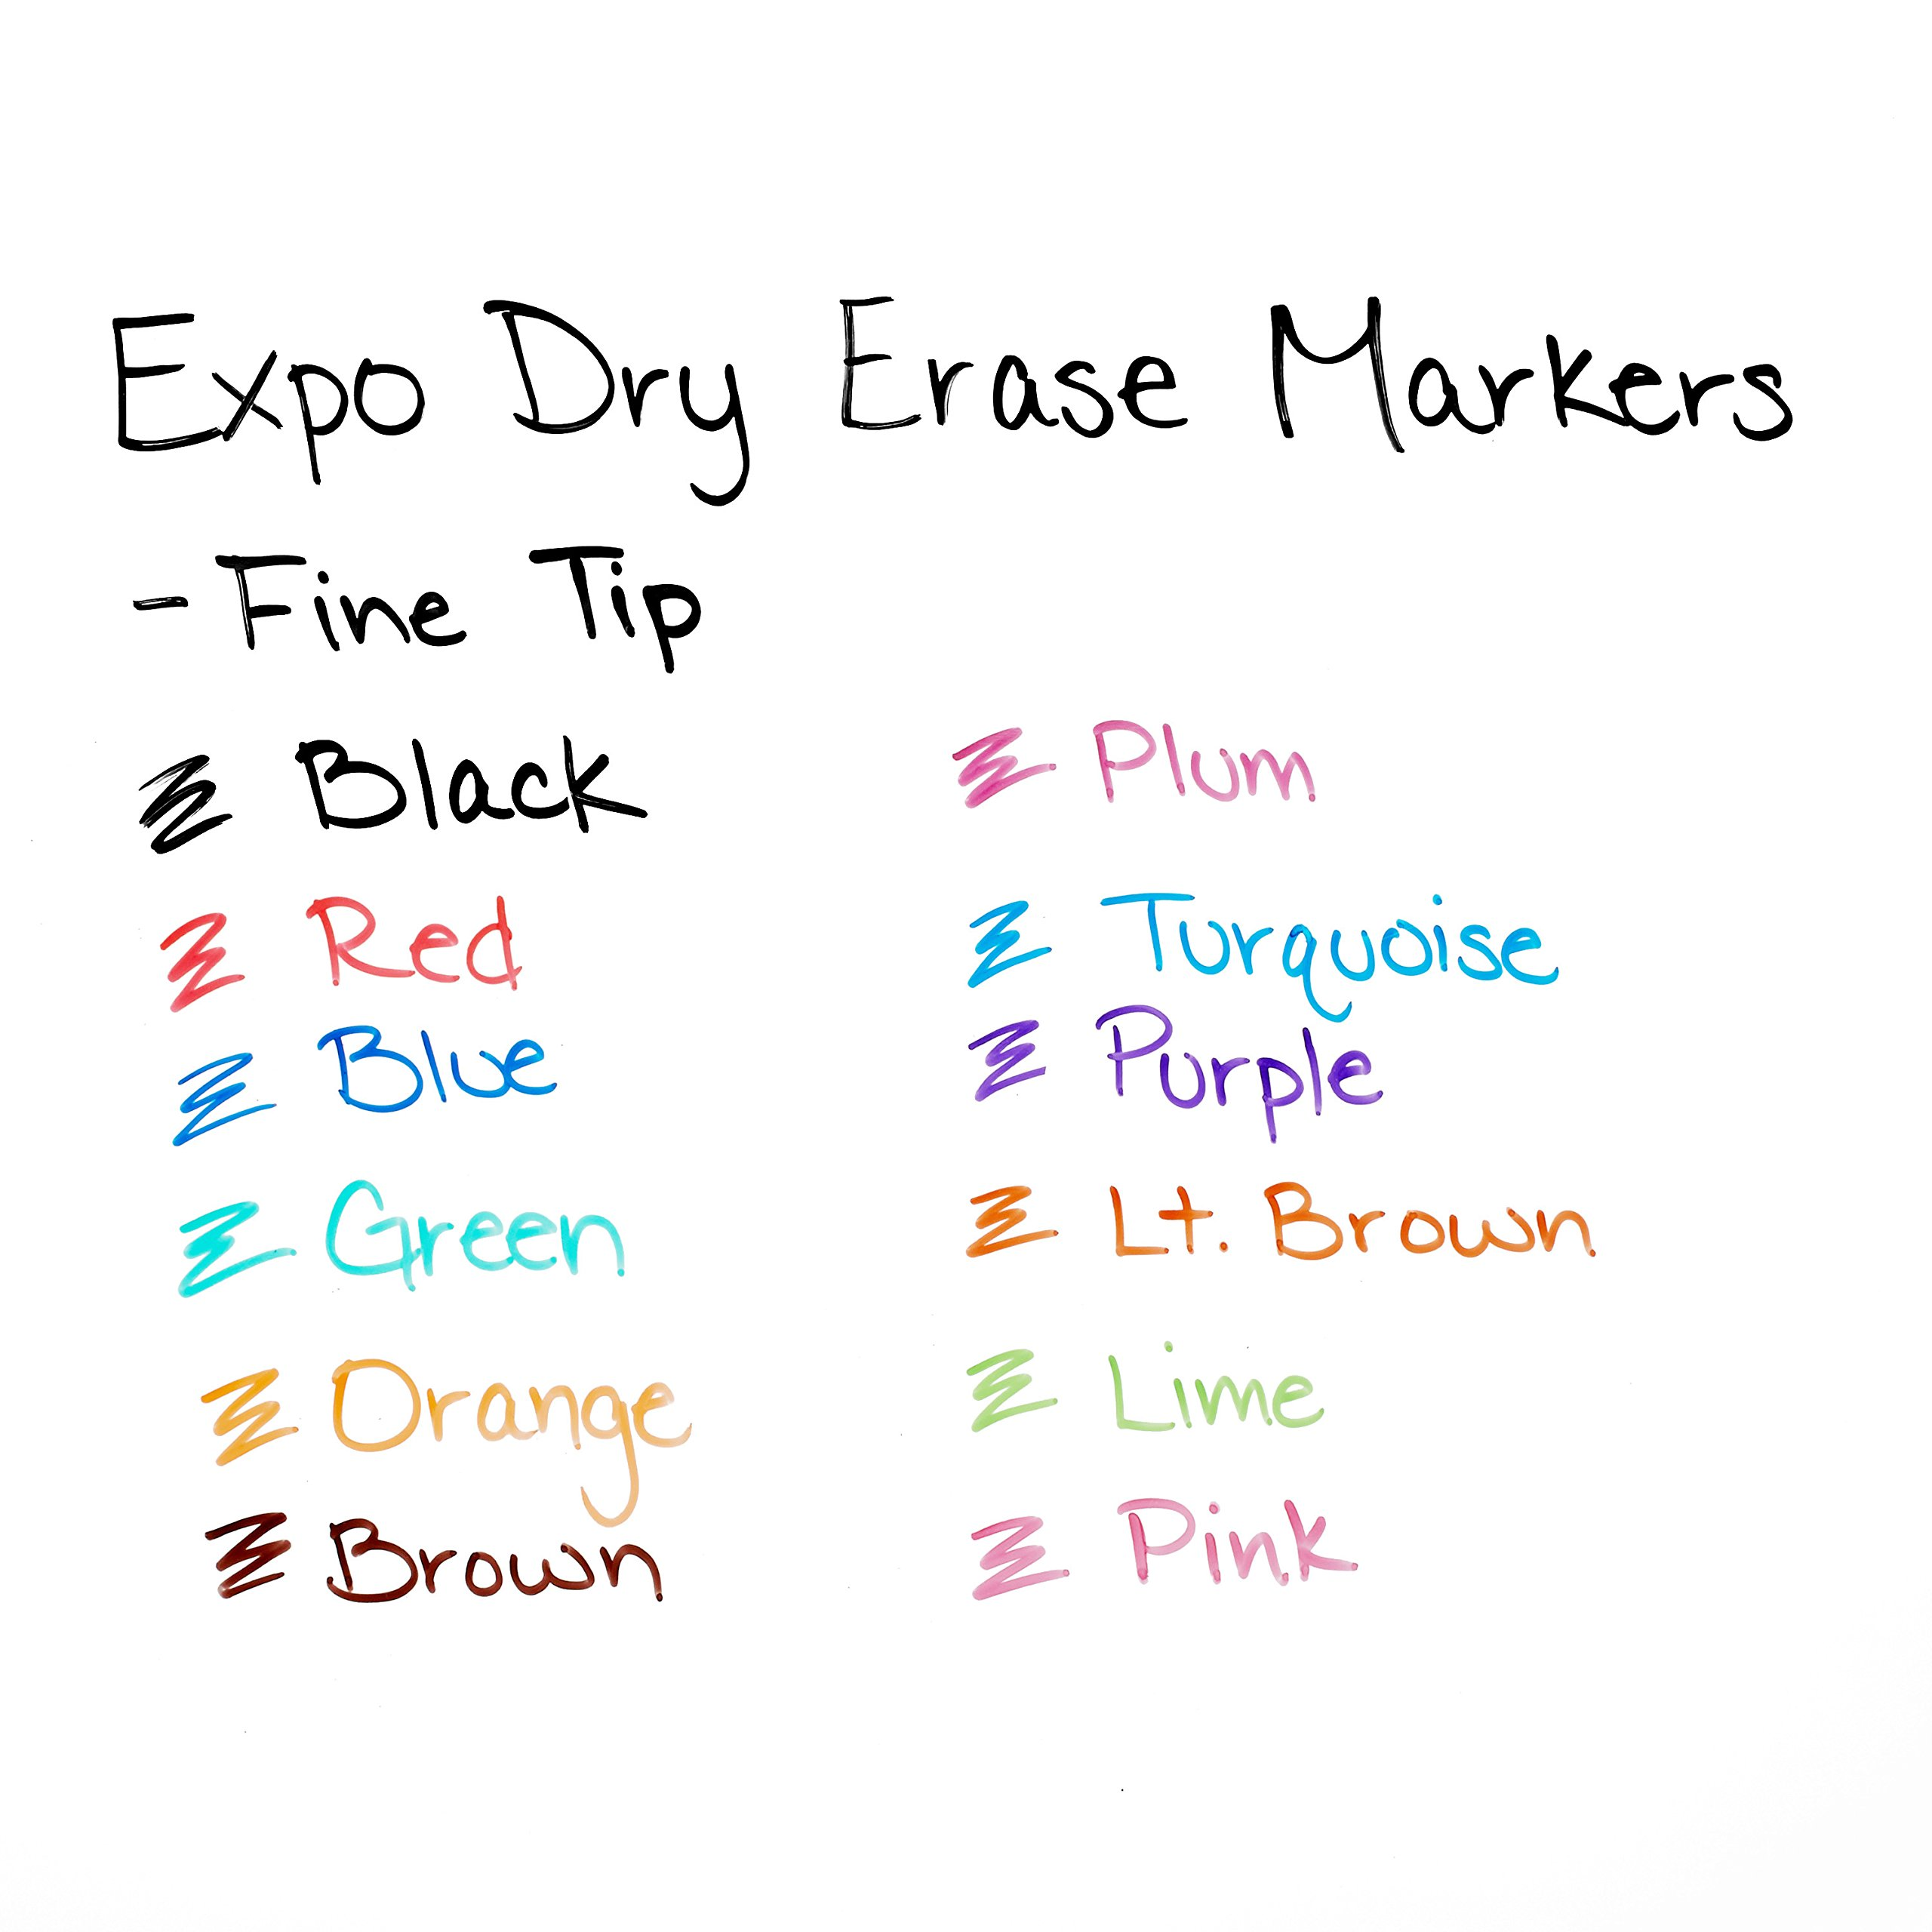 EXPO Low-Odor Dry Erase Markers, Fine Tip, Assorted Colors, 36 Count by Expo (Image #5)